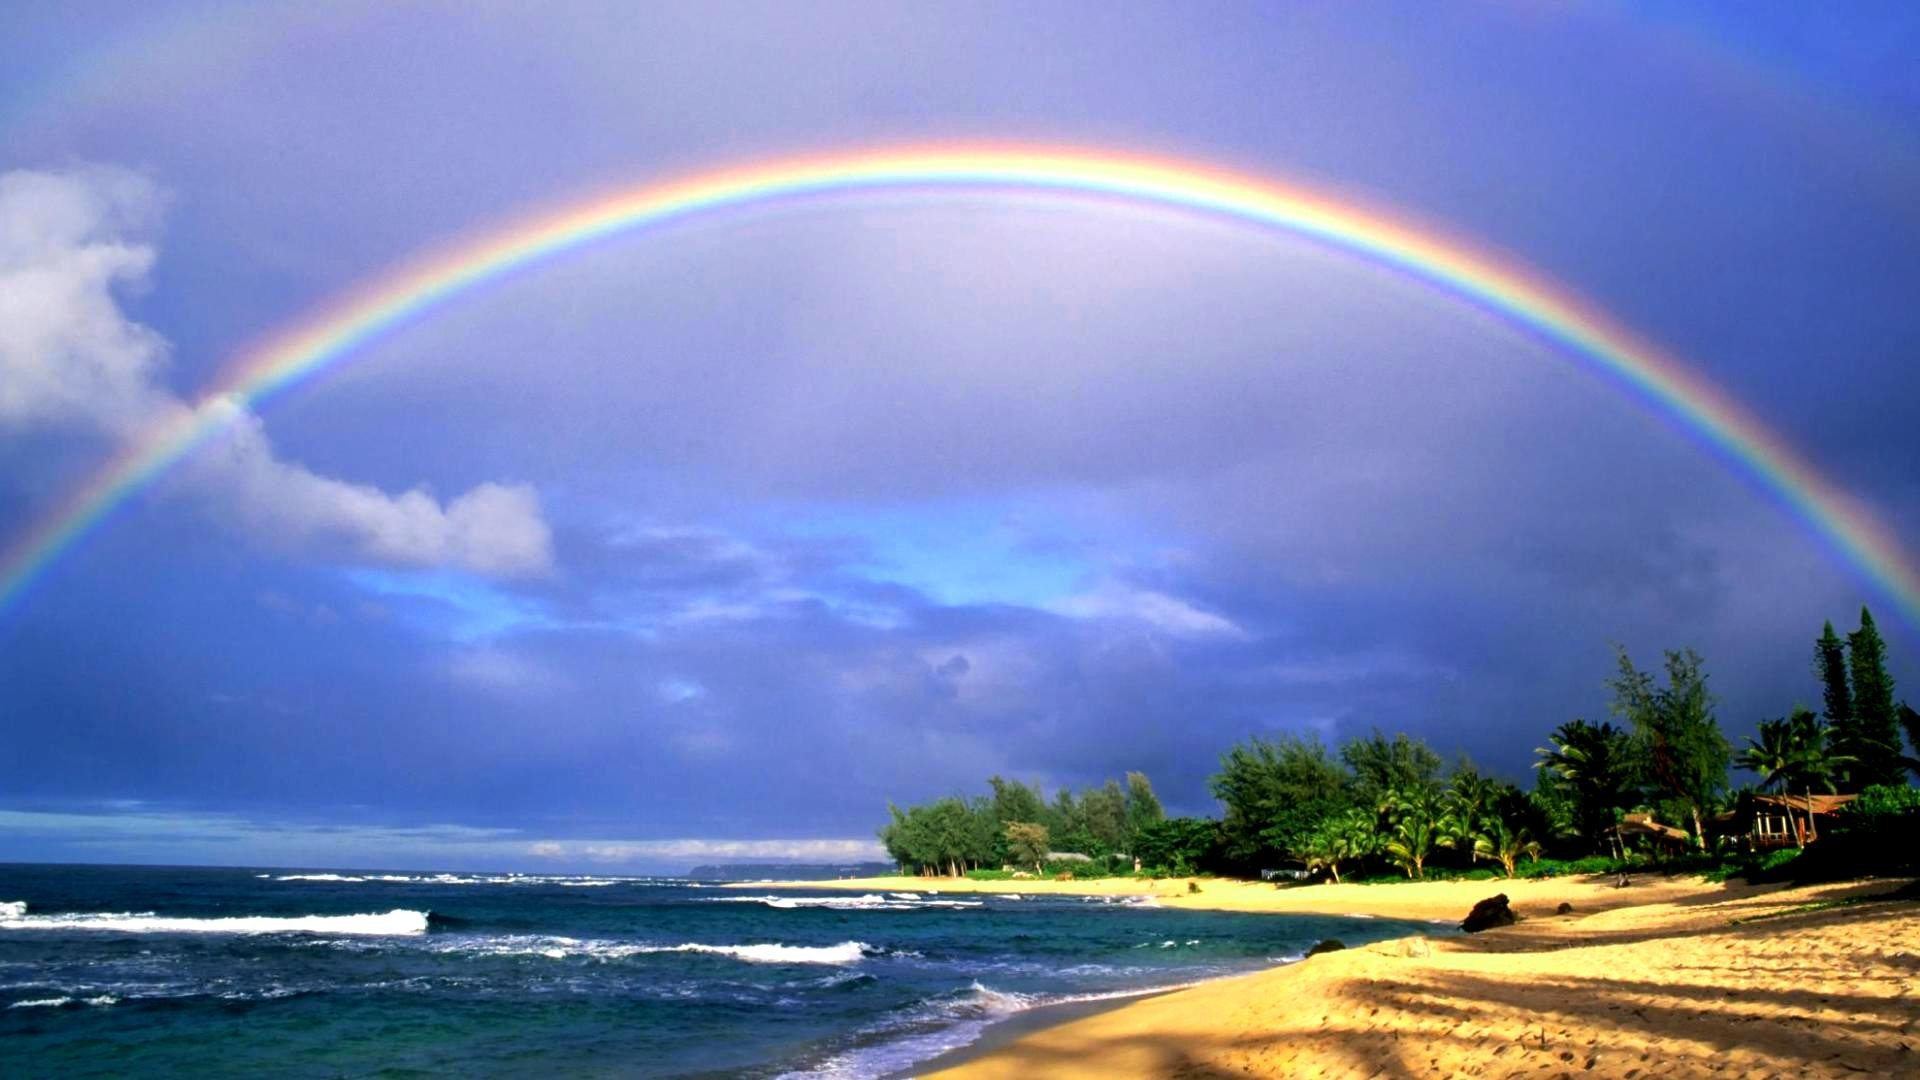 Rainbow Hawaii Beach Wallpaper HD Free Download